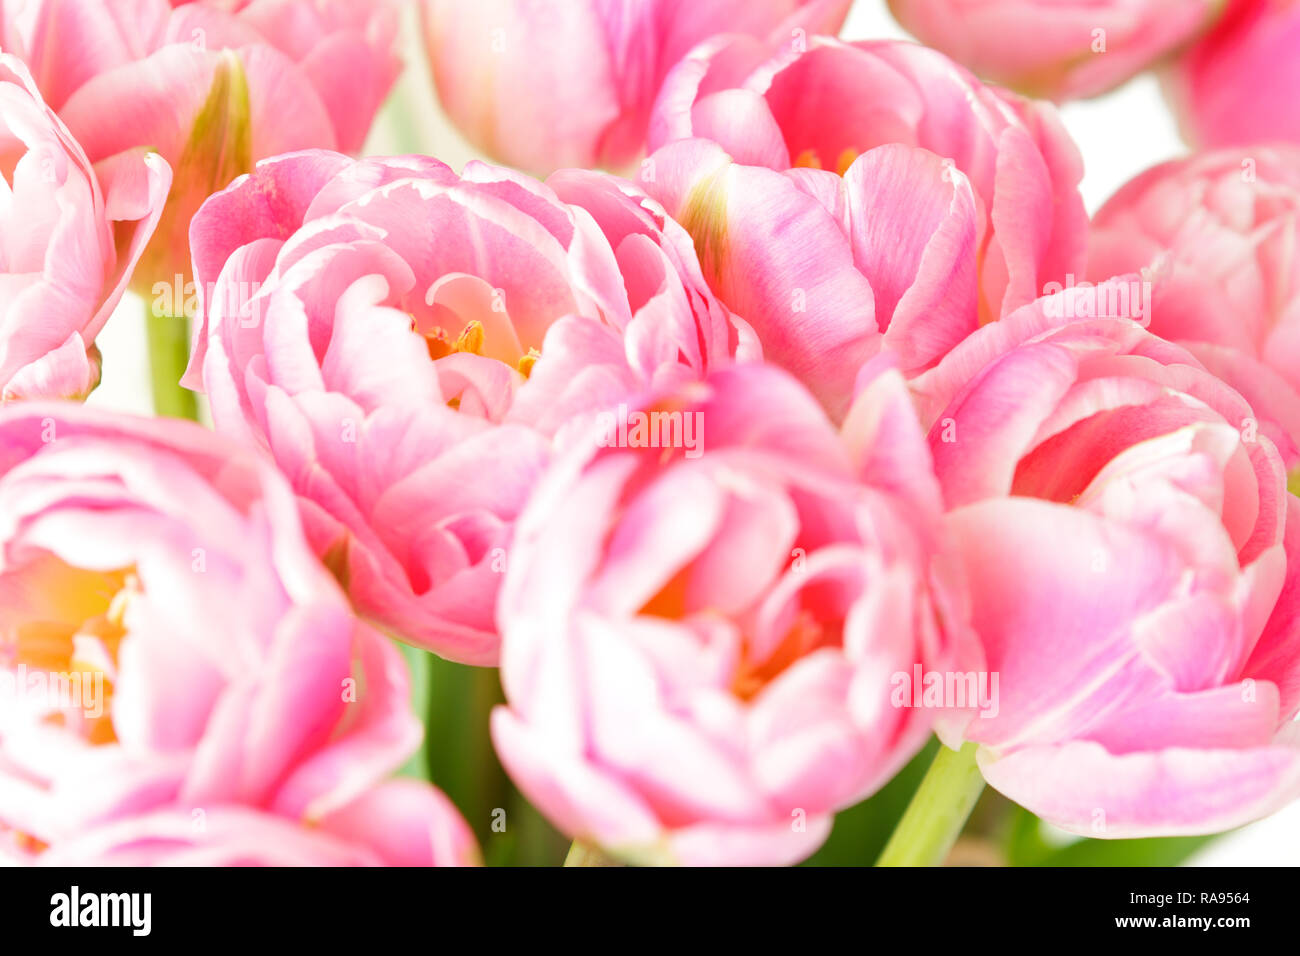 Tulip flowers in shades of pink against white, nostalgic spring background template for florists or greeting cards Stock Photo